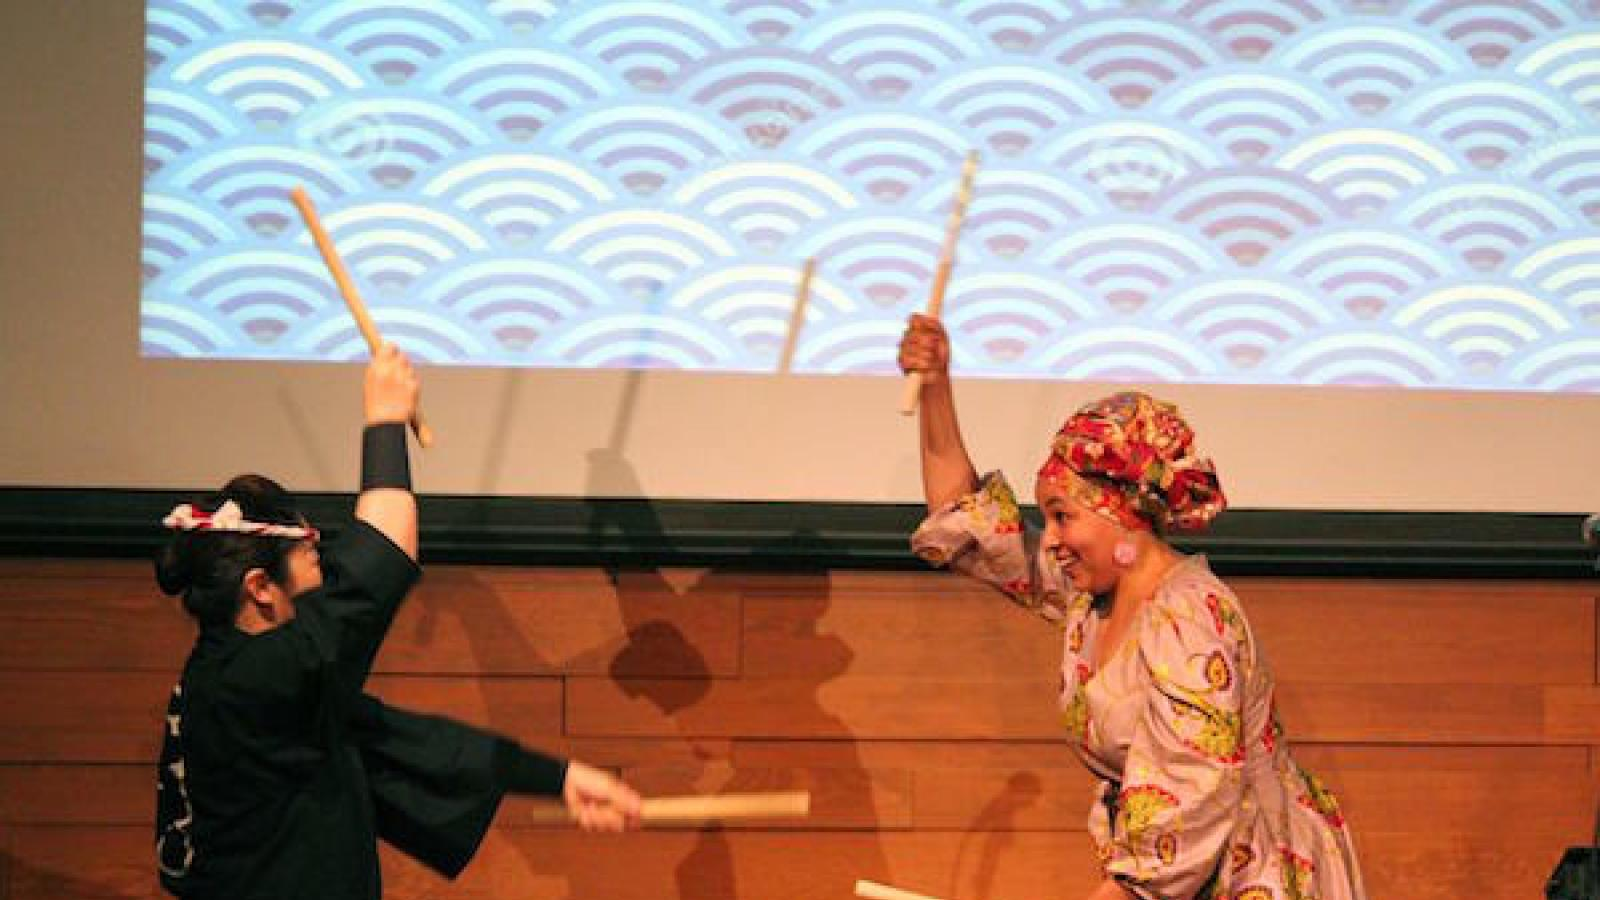 two women play a taiko drum standing on either side of it